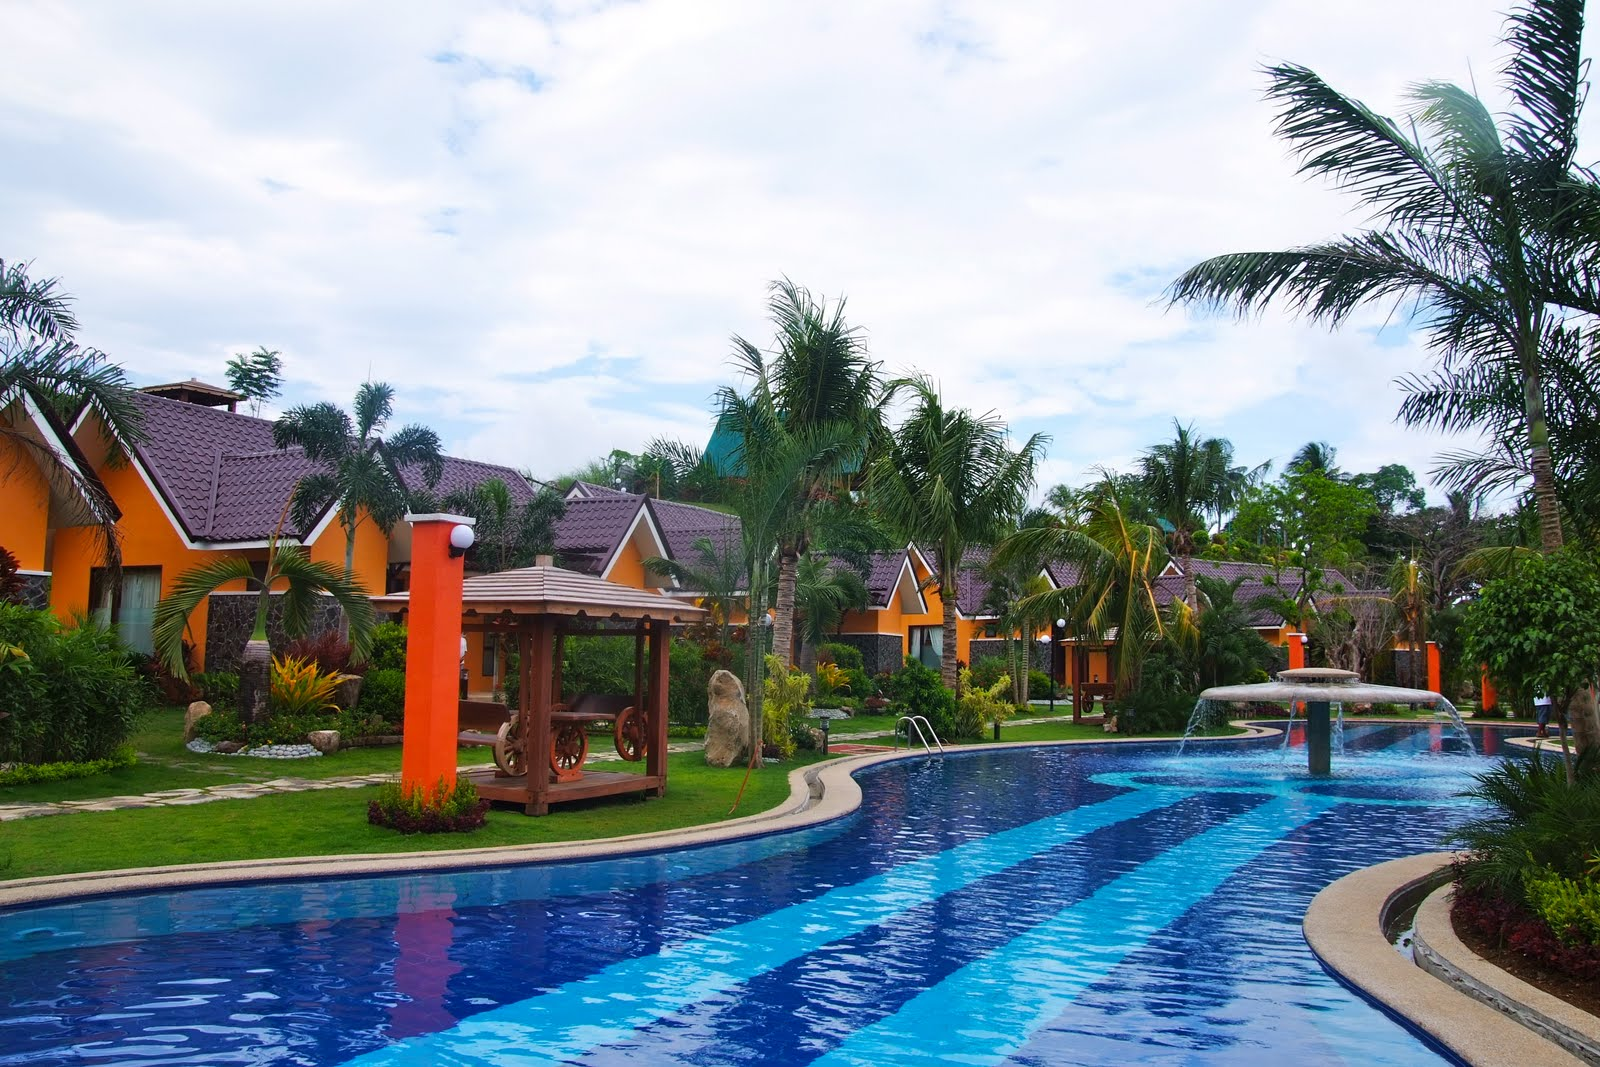 88 Hotspring Resort and spa: Review of Divine from Malvar